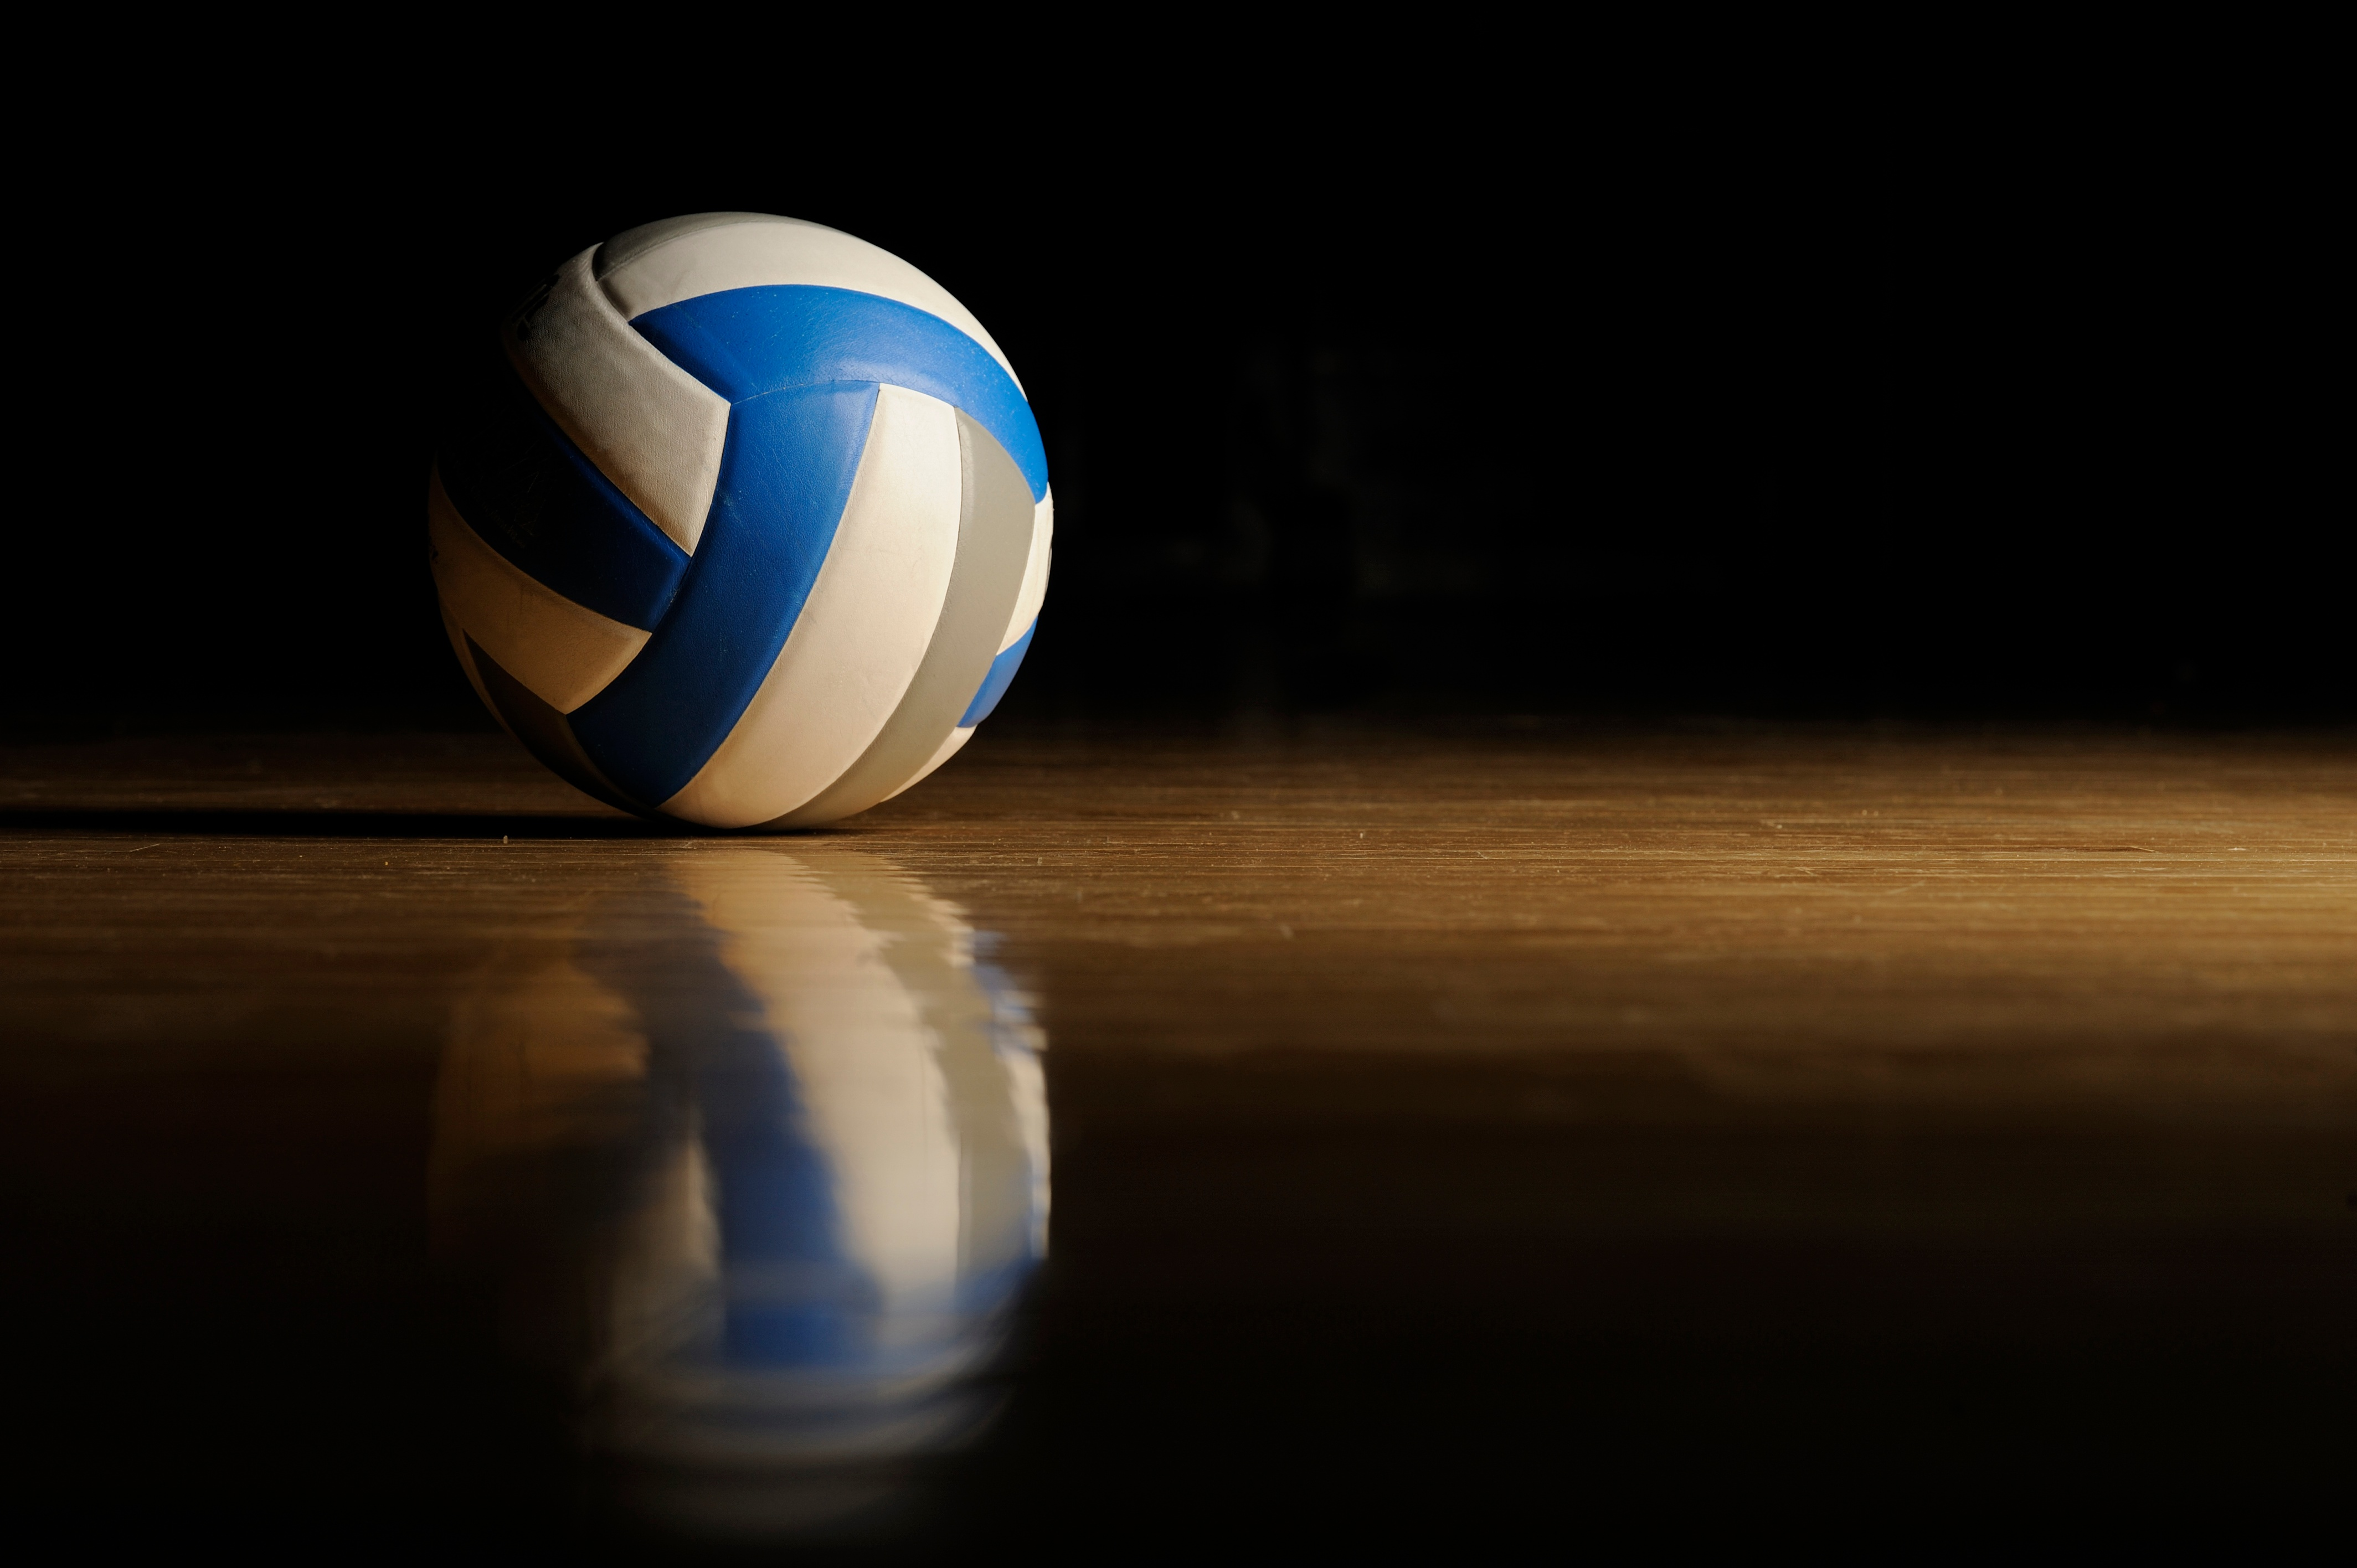 I want to learn how play volleyball